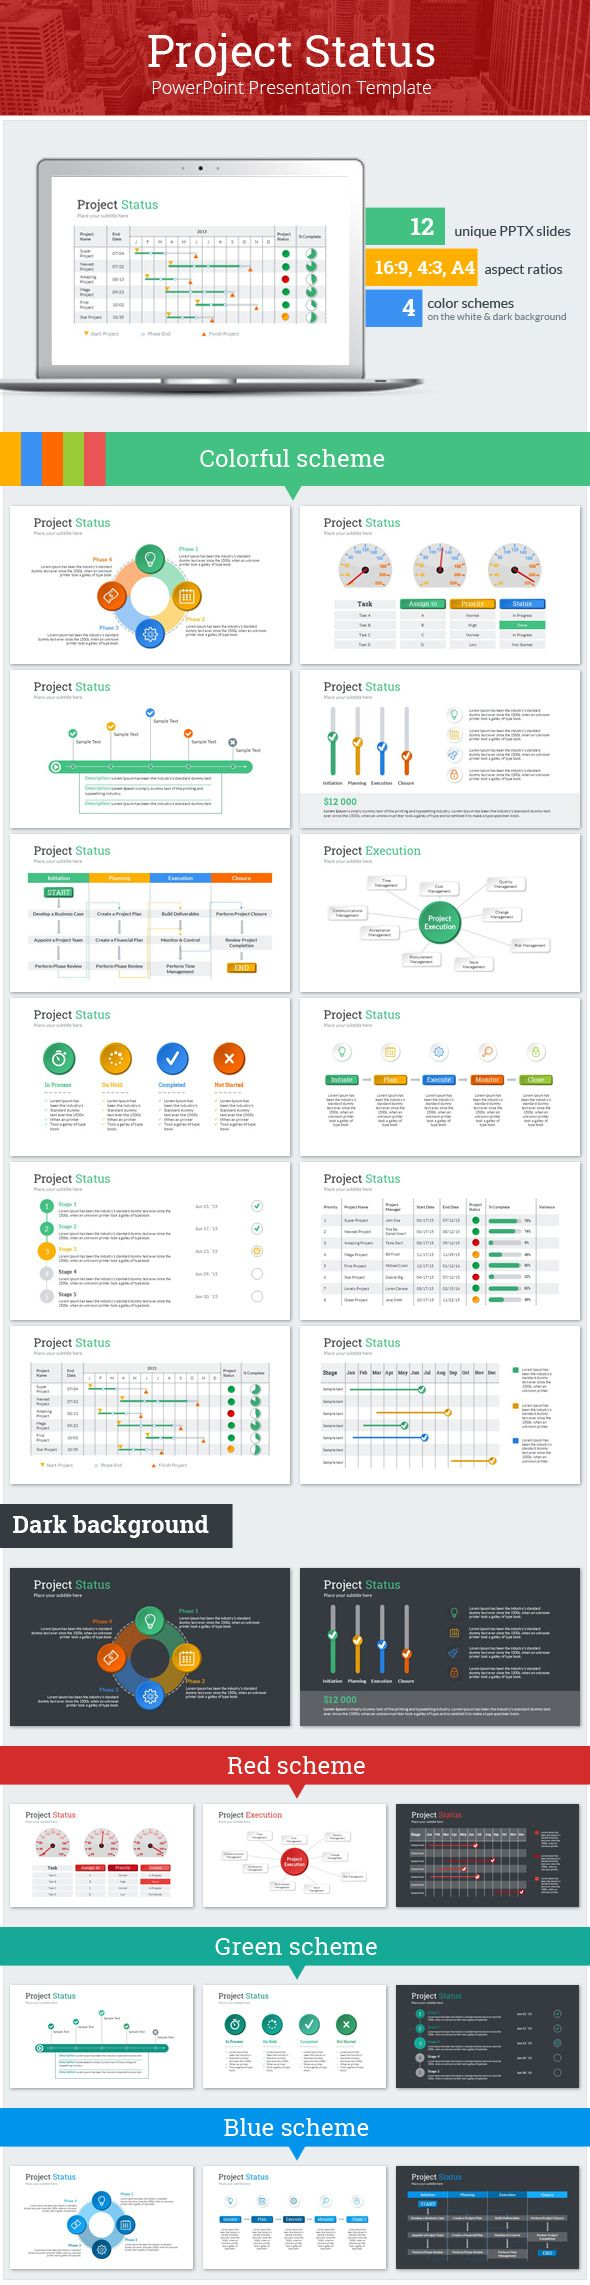 25 best ideas about project management templates on